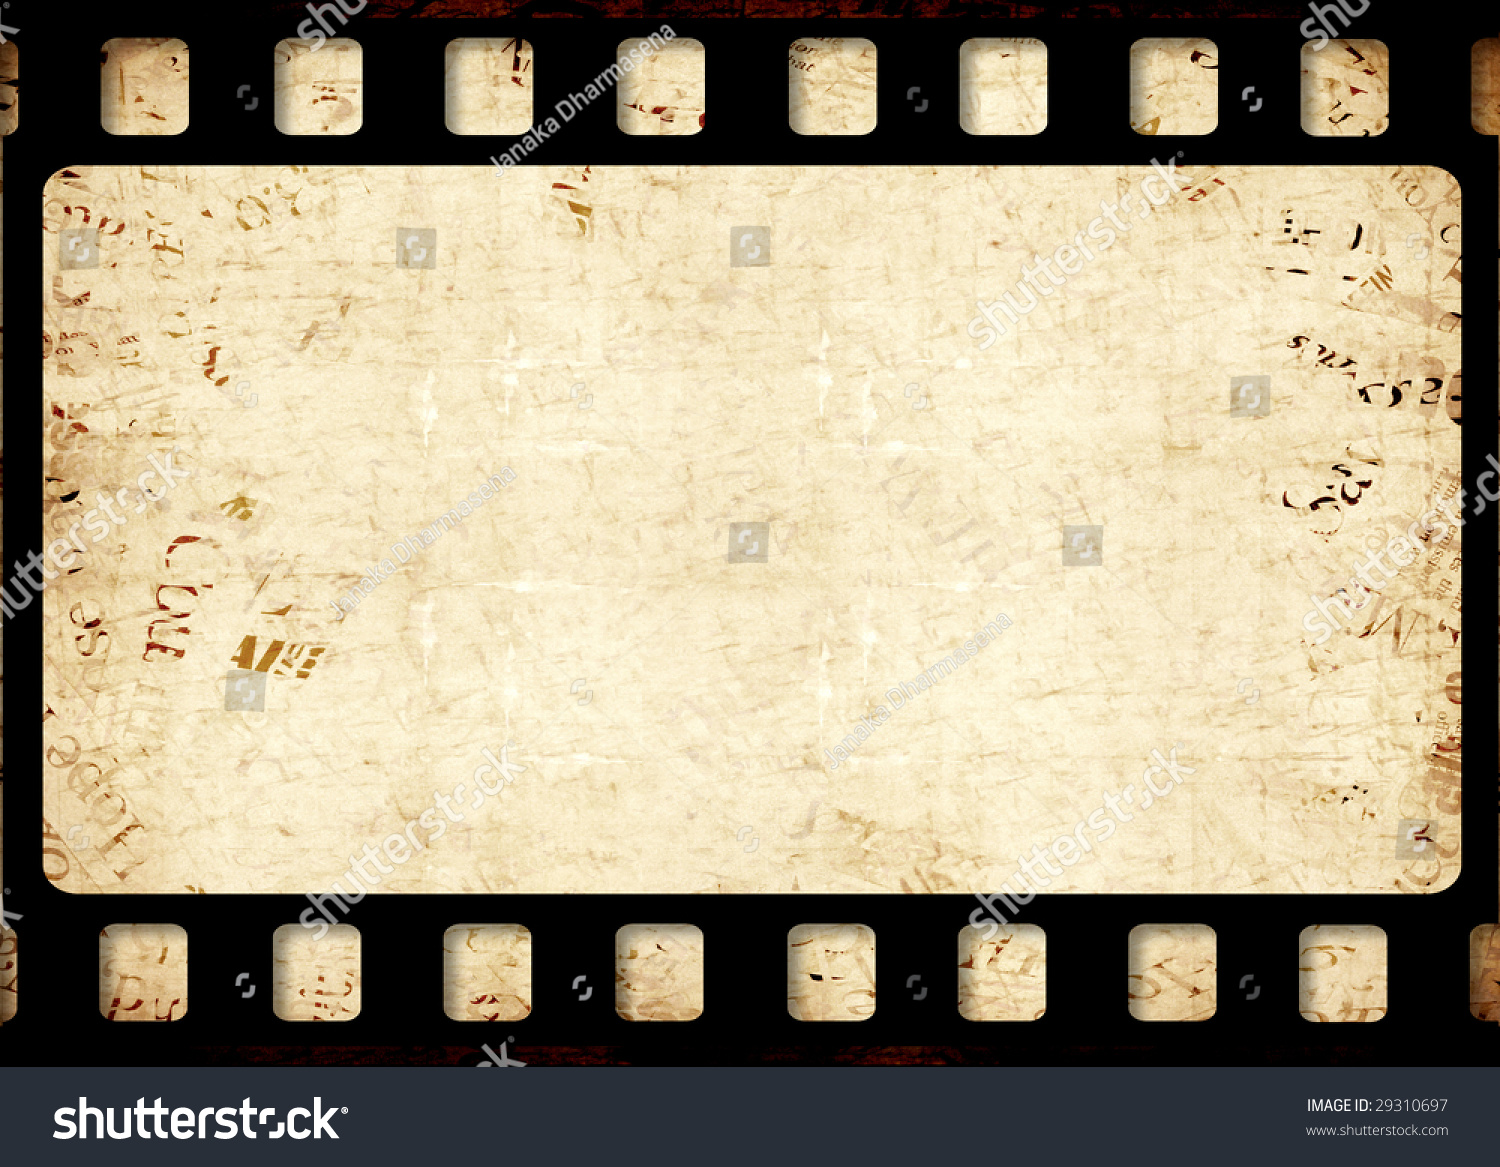 Movie gallery stock